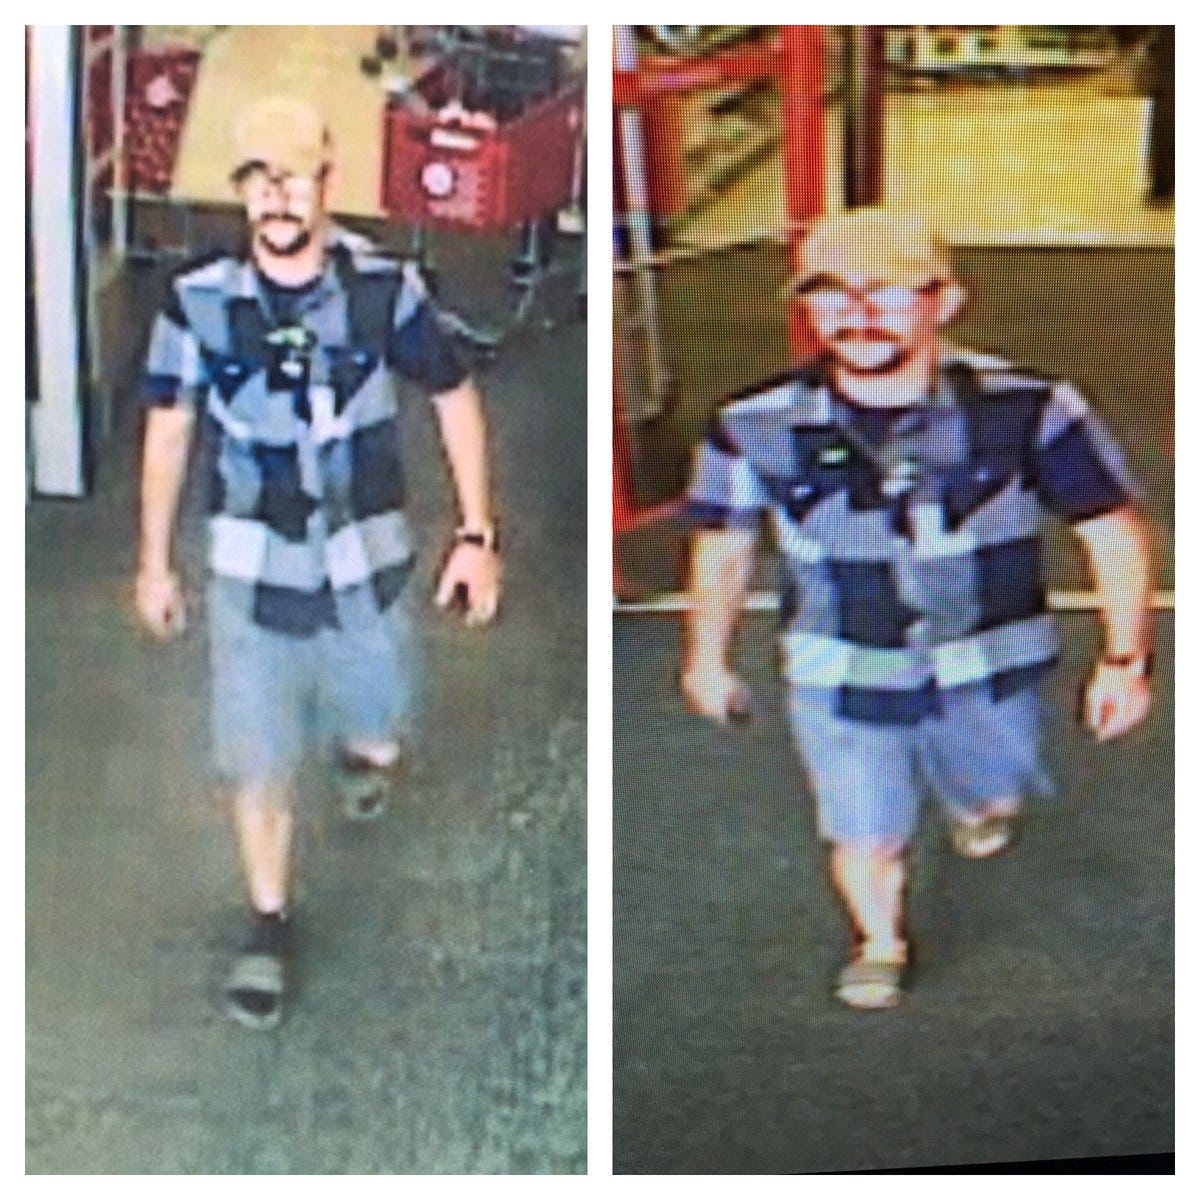 Ventura police seek public's help to ID man allegedly using stolen credit cards